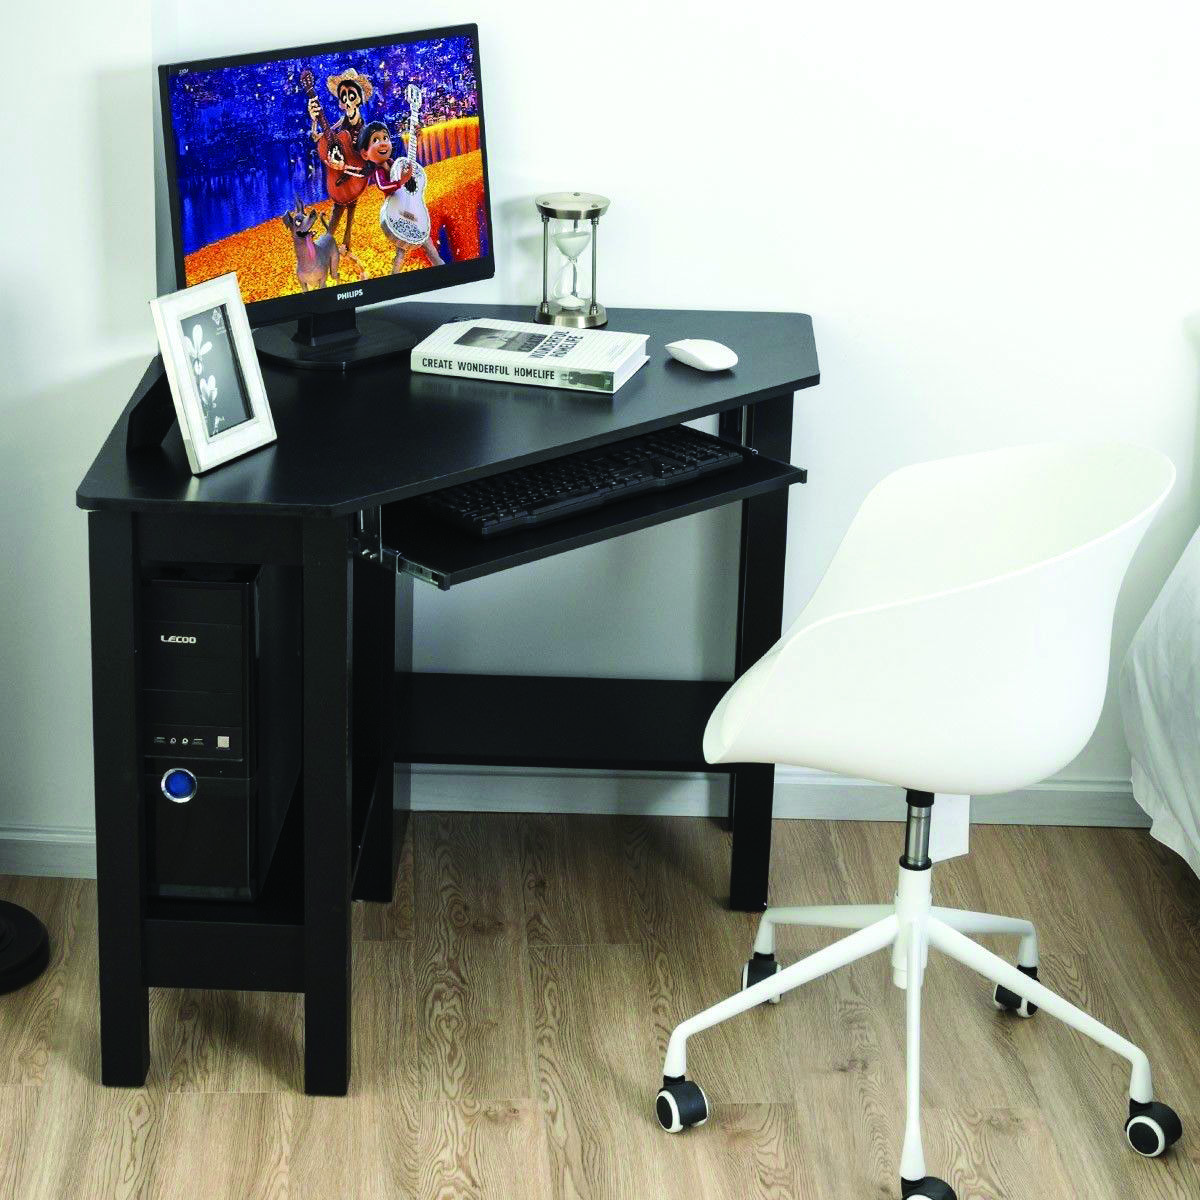 17 Diy Corner Desk Ideas To Build For Your Office Diy Corner Desk Corner Desk Desk With Drawers